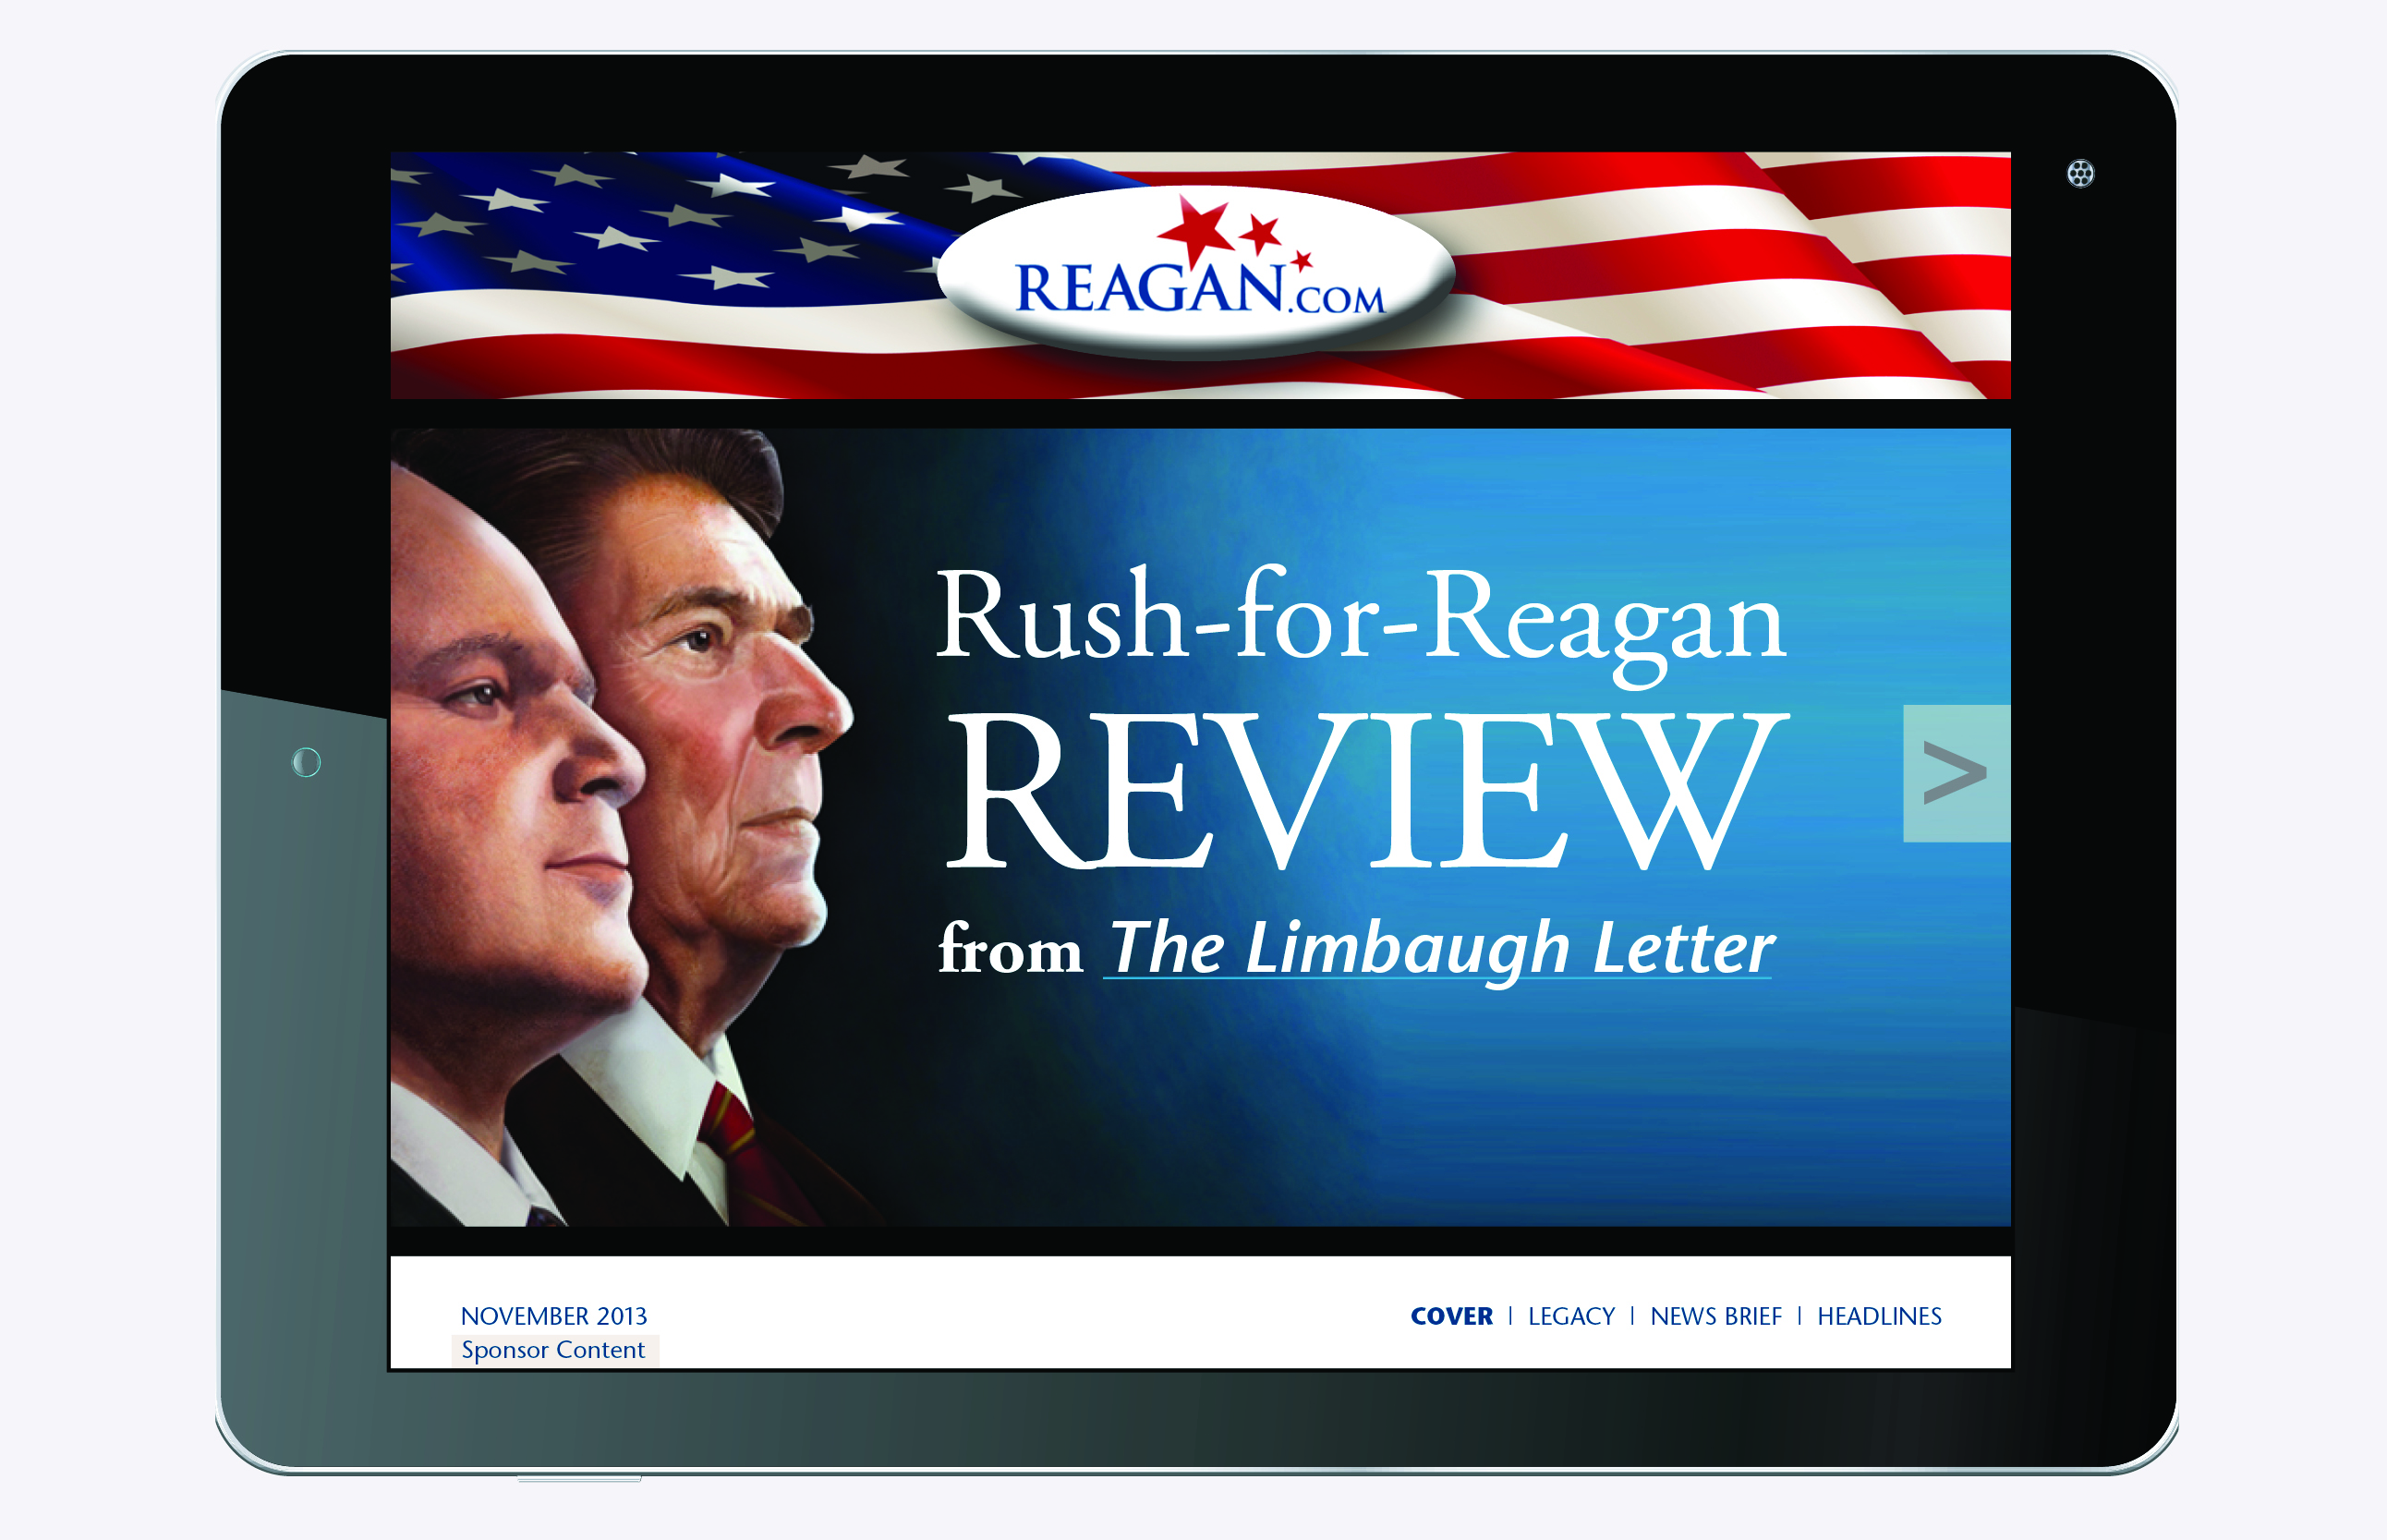 Rush for Reagan Review